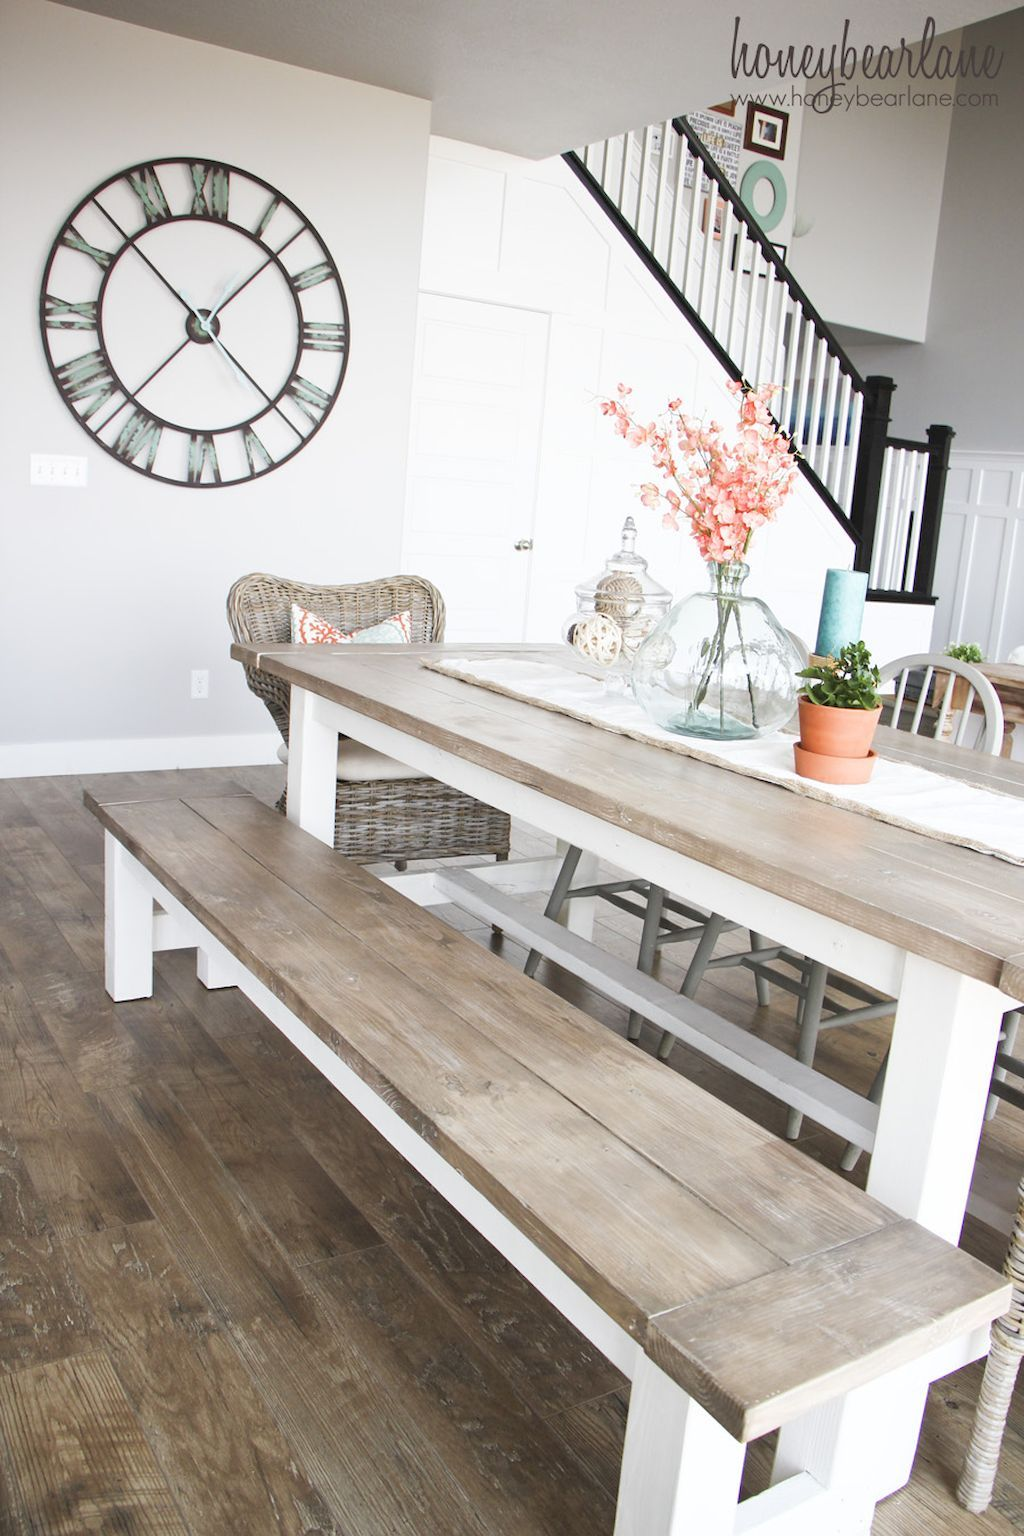 50 Country Rustic Dining Room Table Ideas  Dining Room Table Endearing Dining Room Table Bench Seat Decorating Inspiration